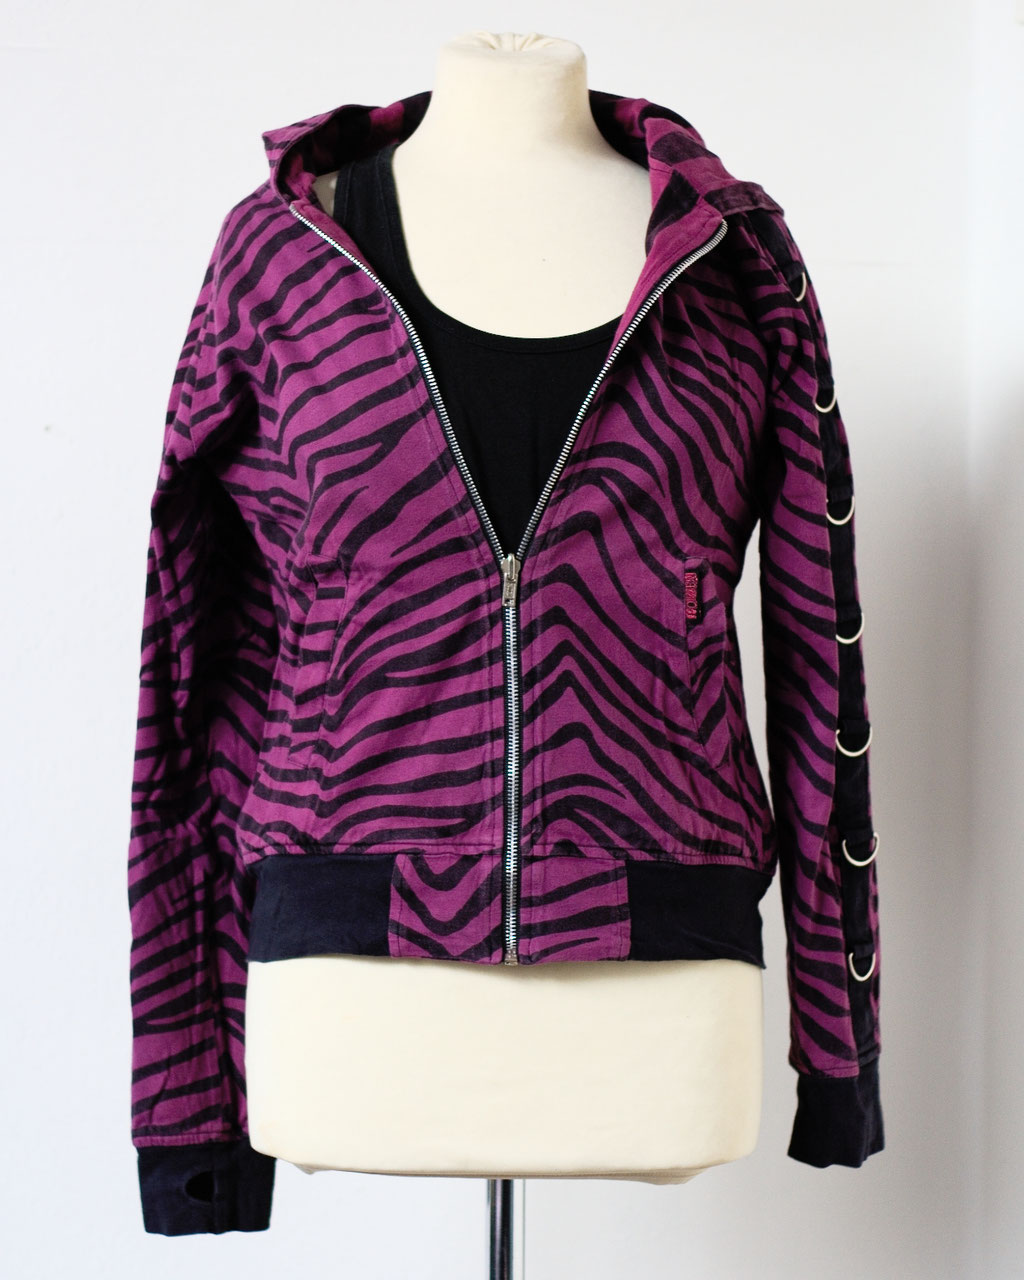 Flohmarkt: Pullis und Jacken - Poizen Industries Wendejacke lila Zebra - Zebraspider DIY Anti-Fashion Blog